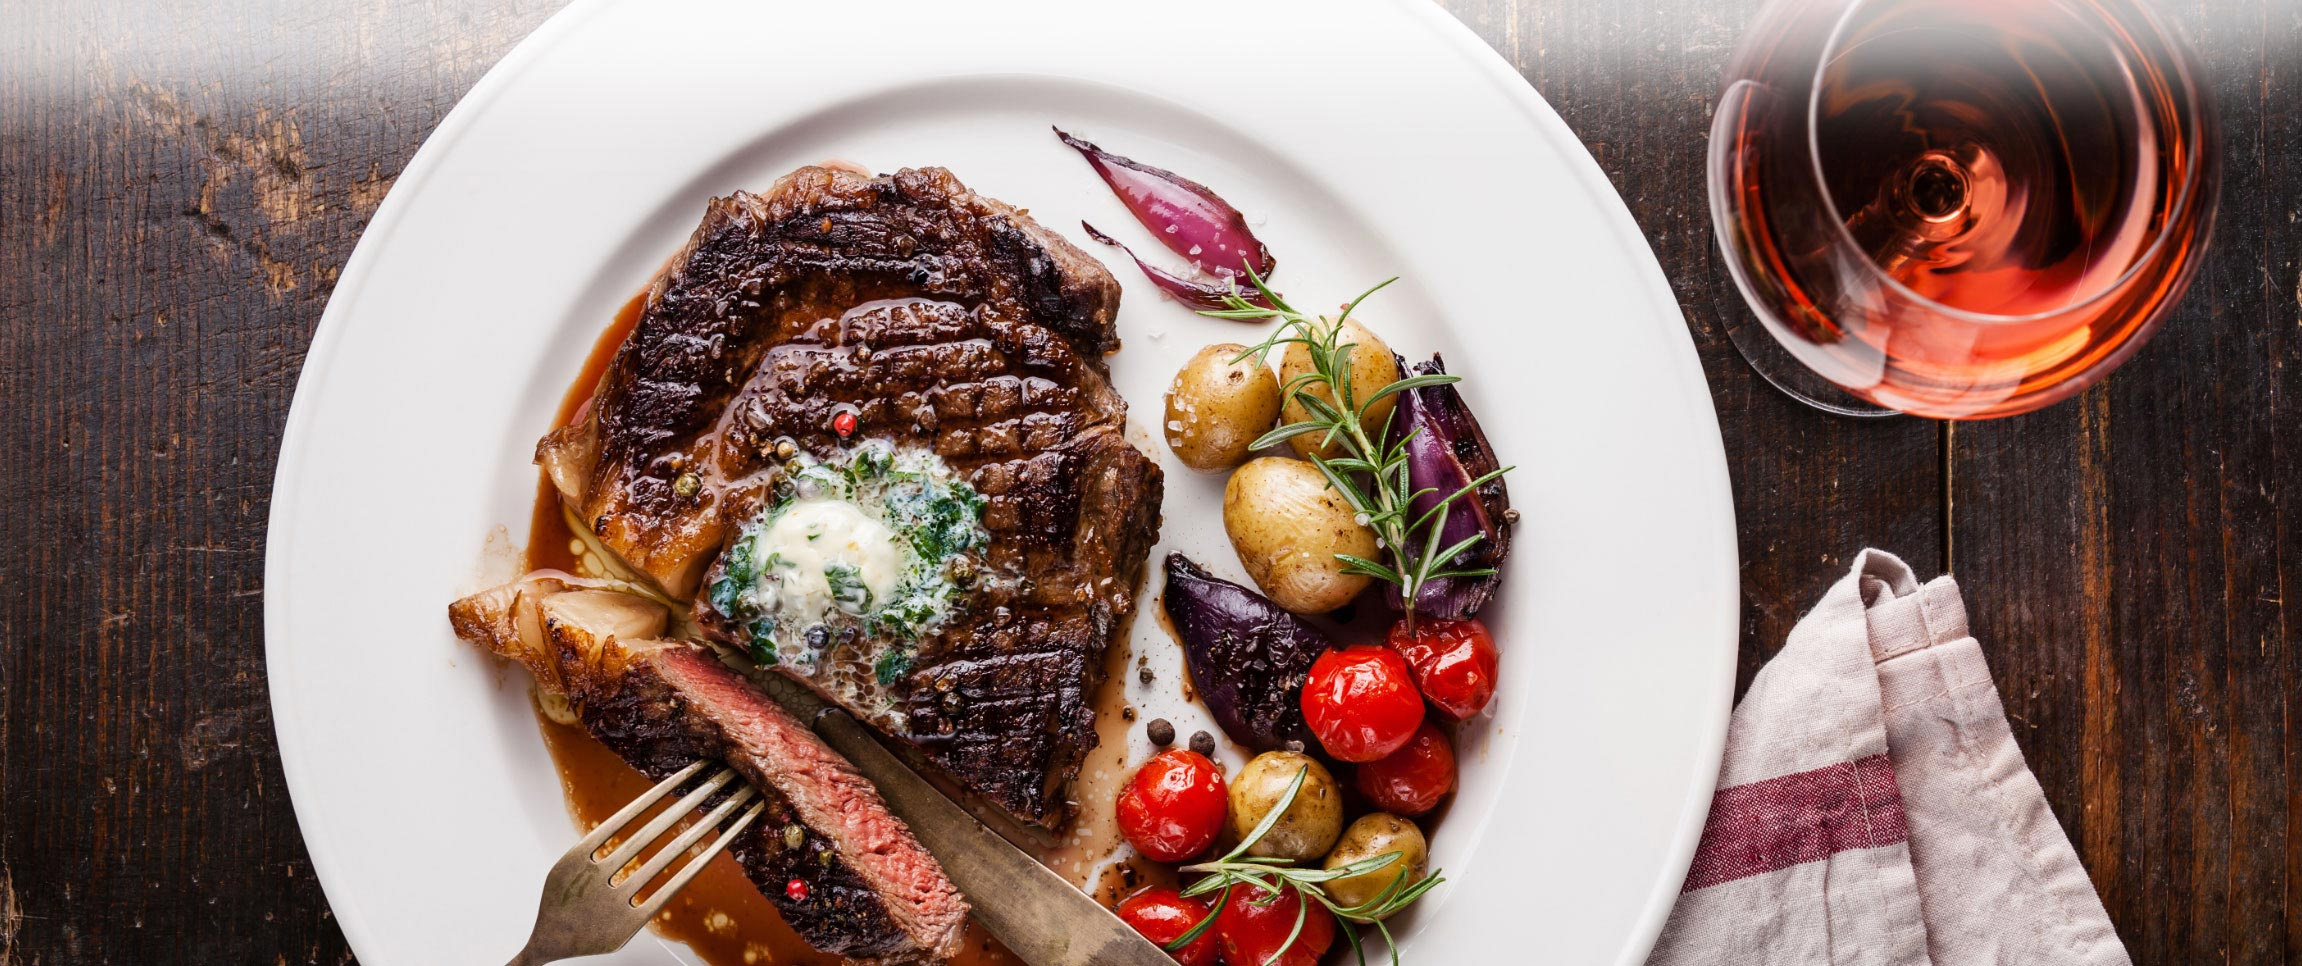 Steak and Wine Upselling Tips